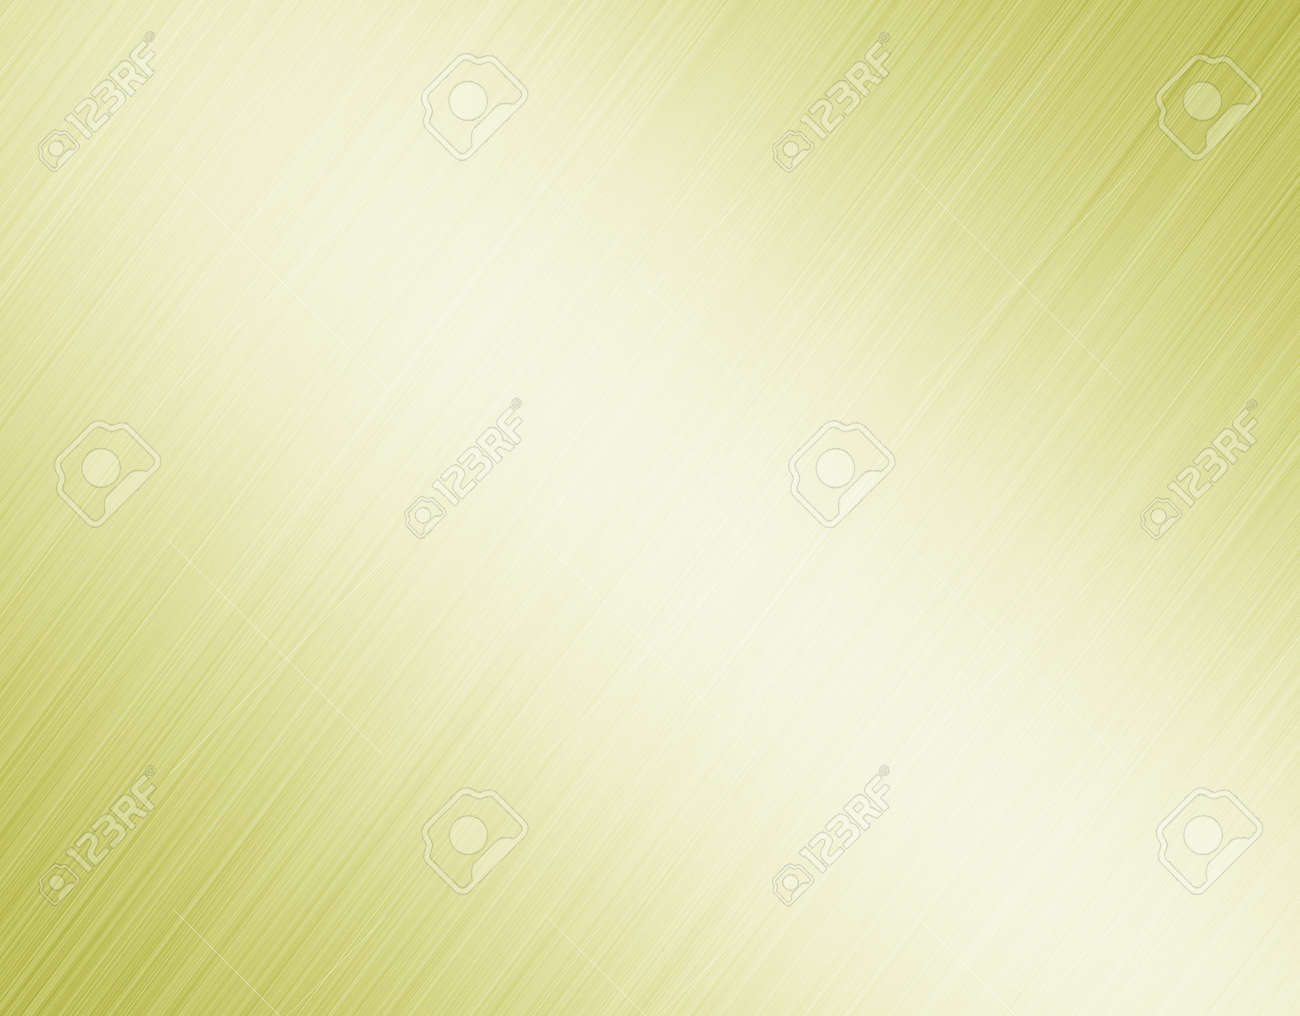 metal, stainless steel texture background with reflection - 120132710